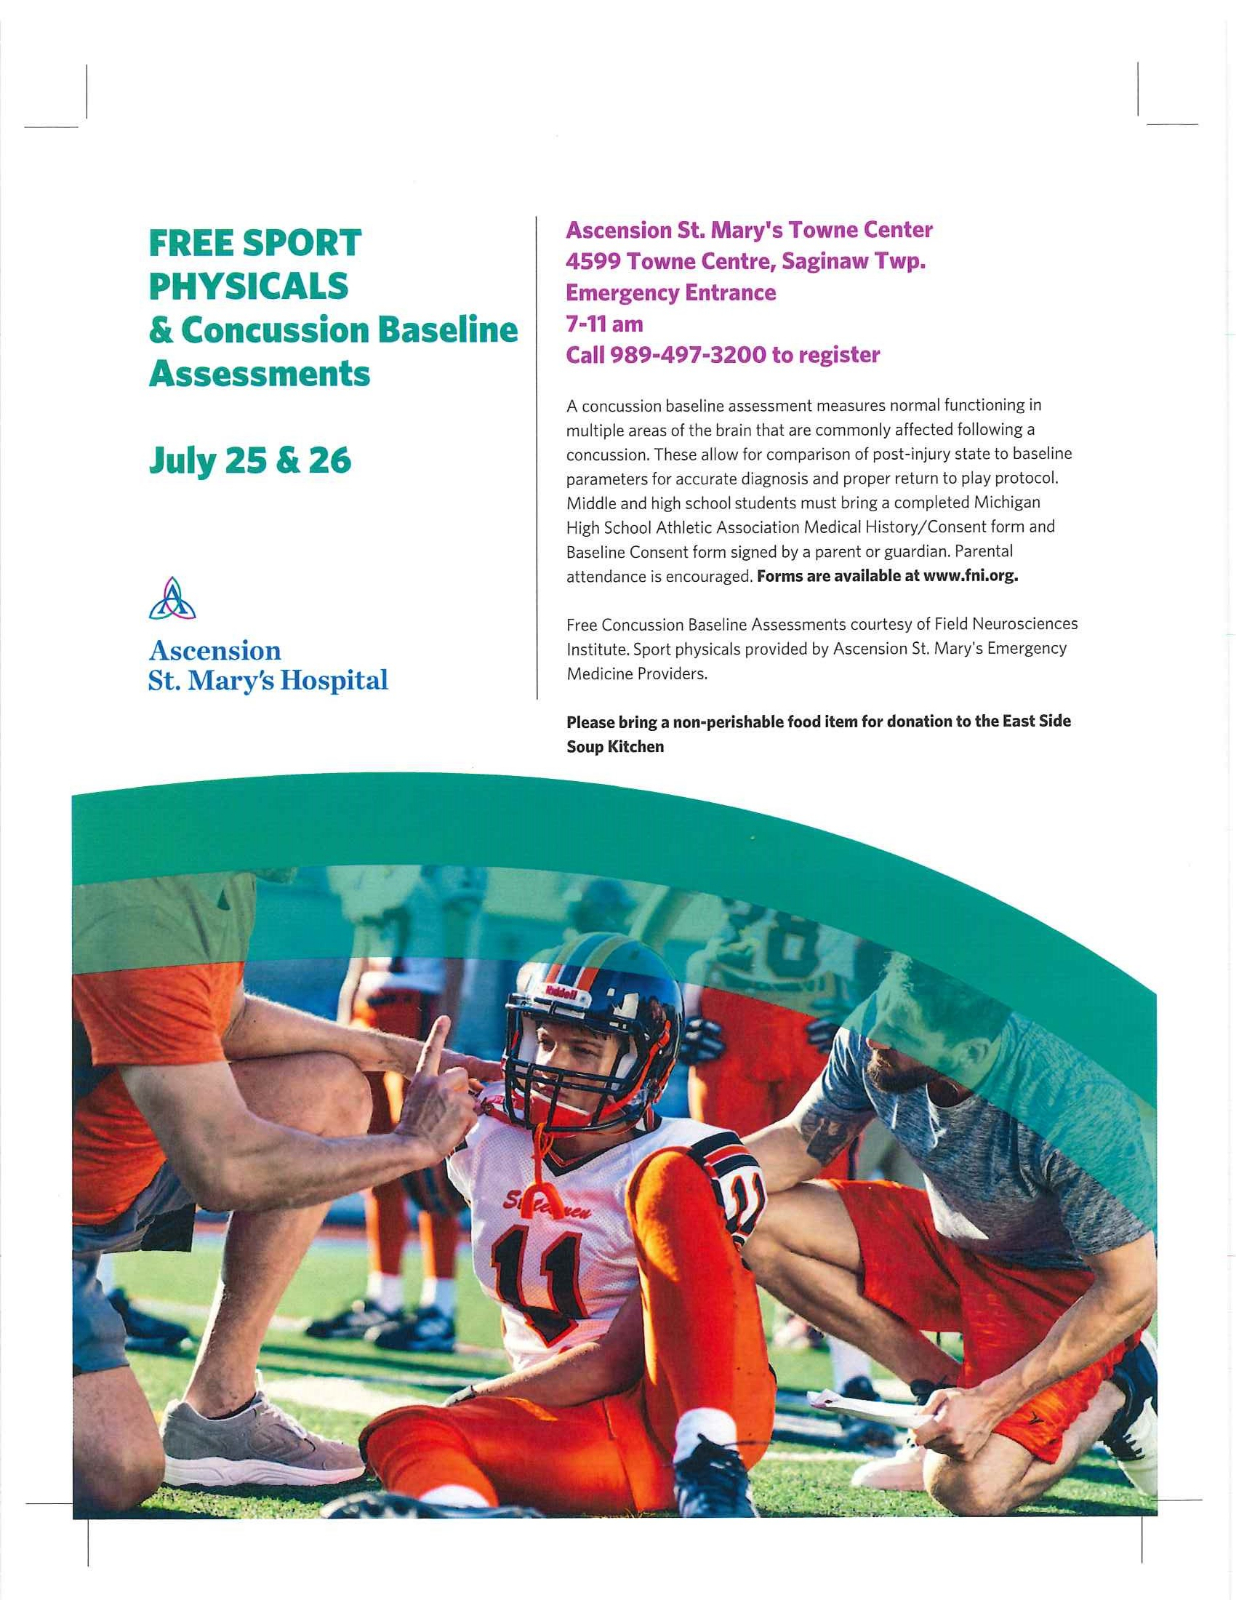 Ascension St. Mary's FREE Sports Physical Event July 25 & 26